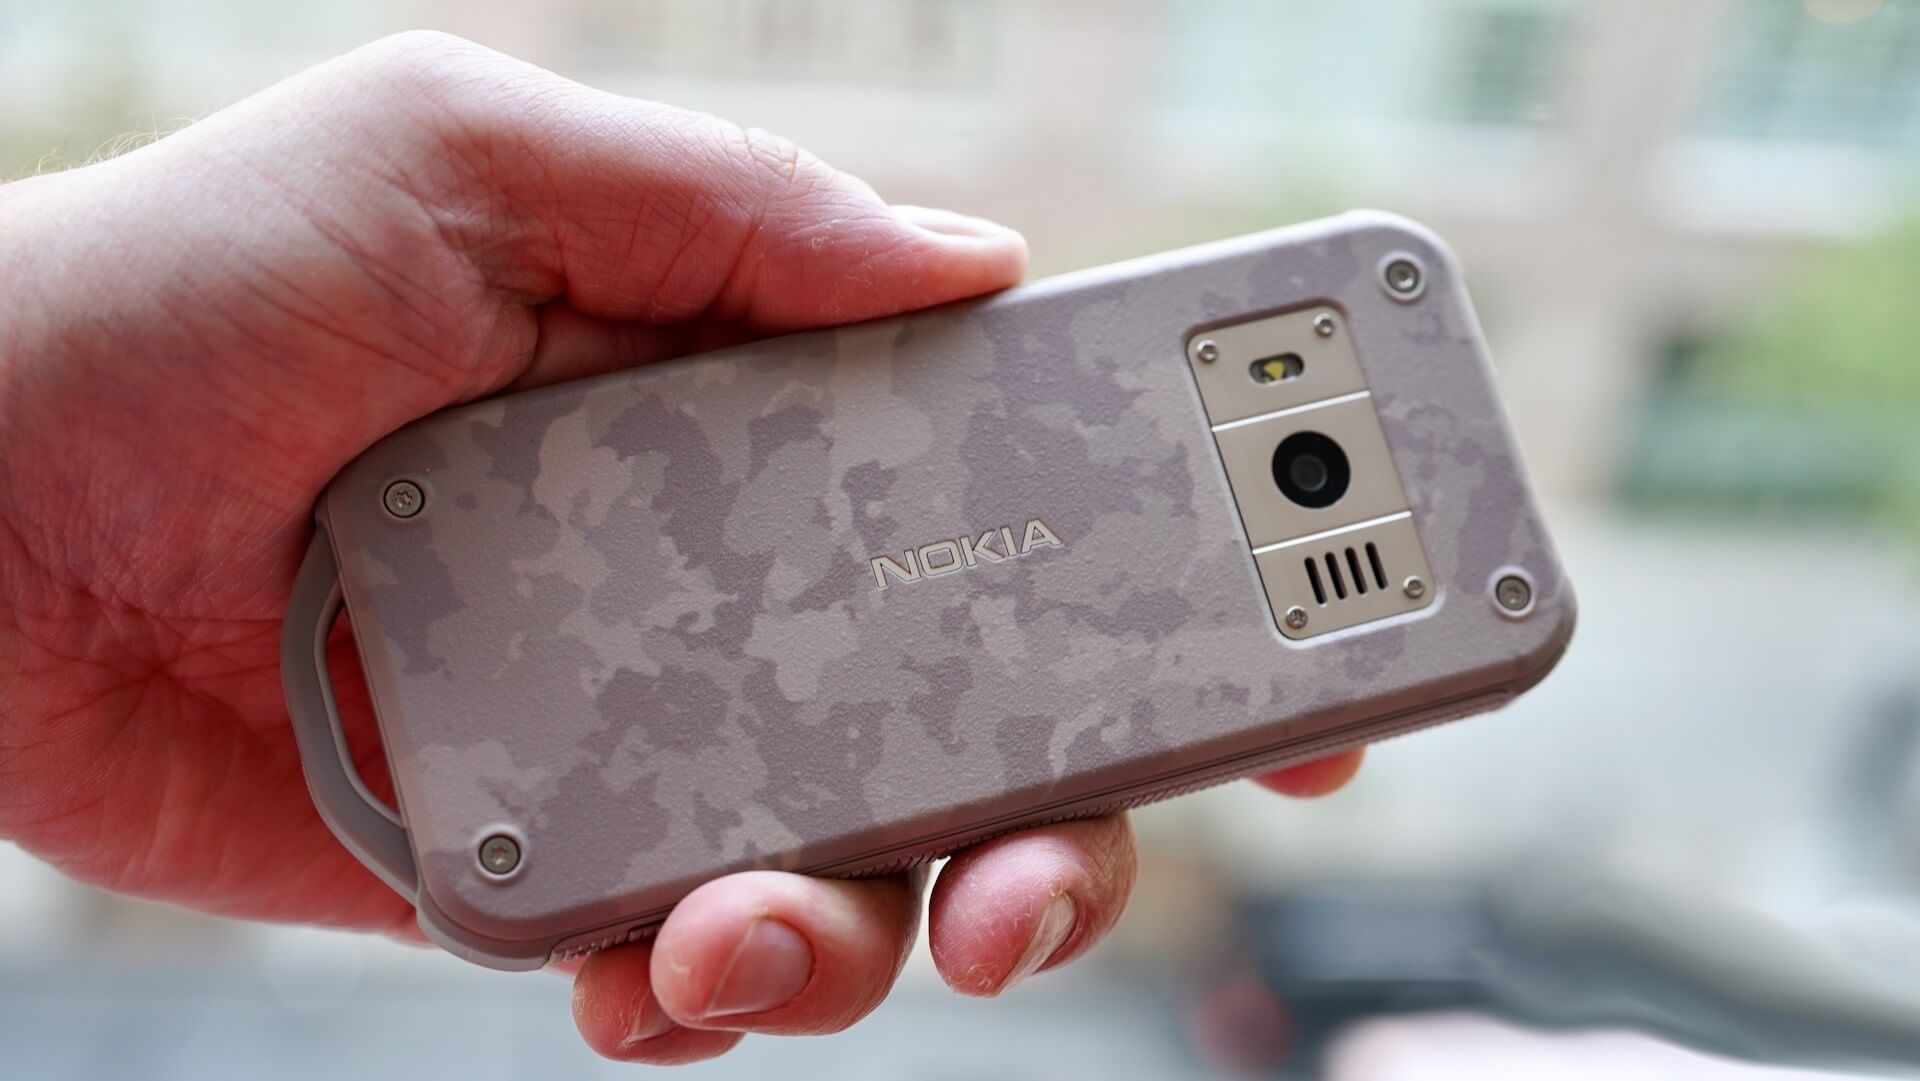 Nokia 800 Tough